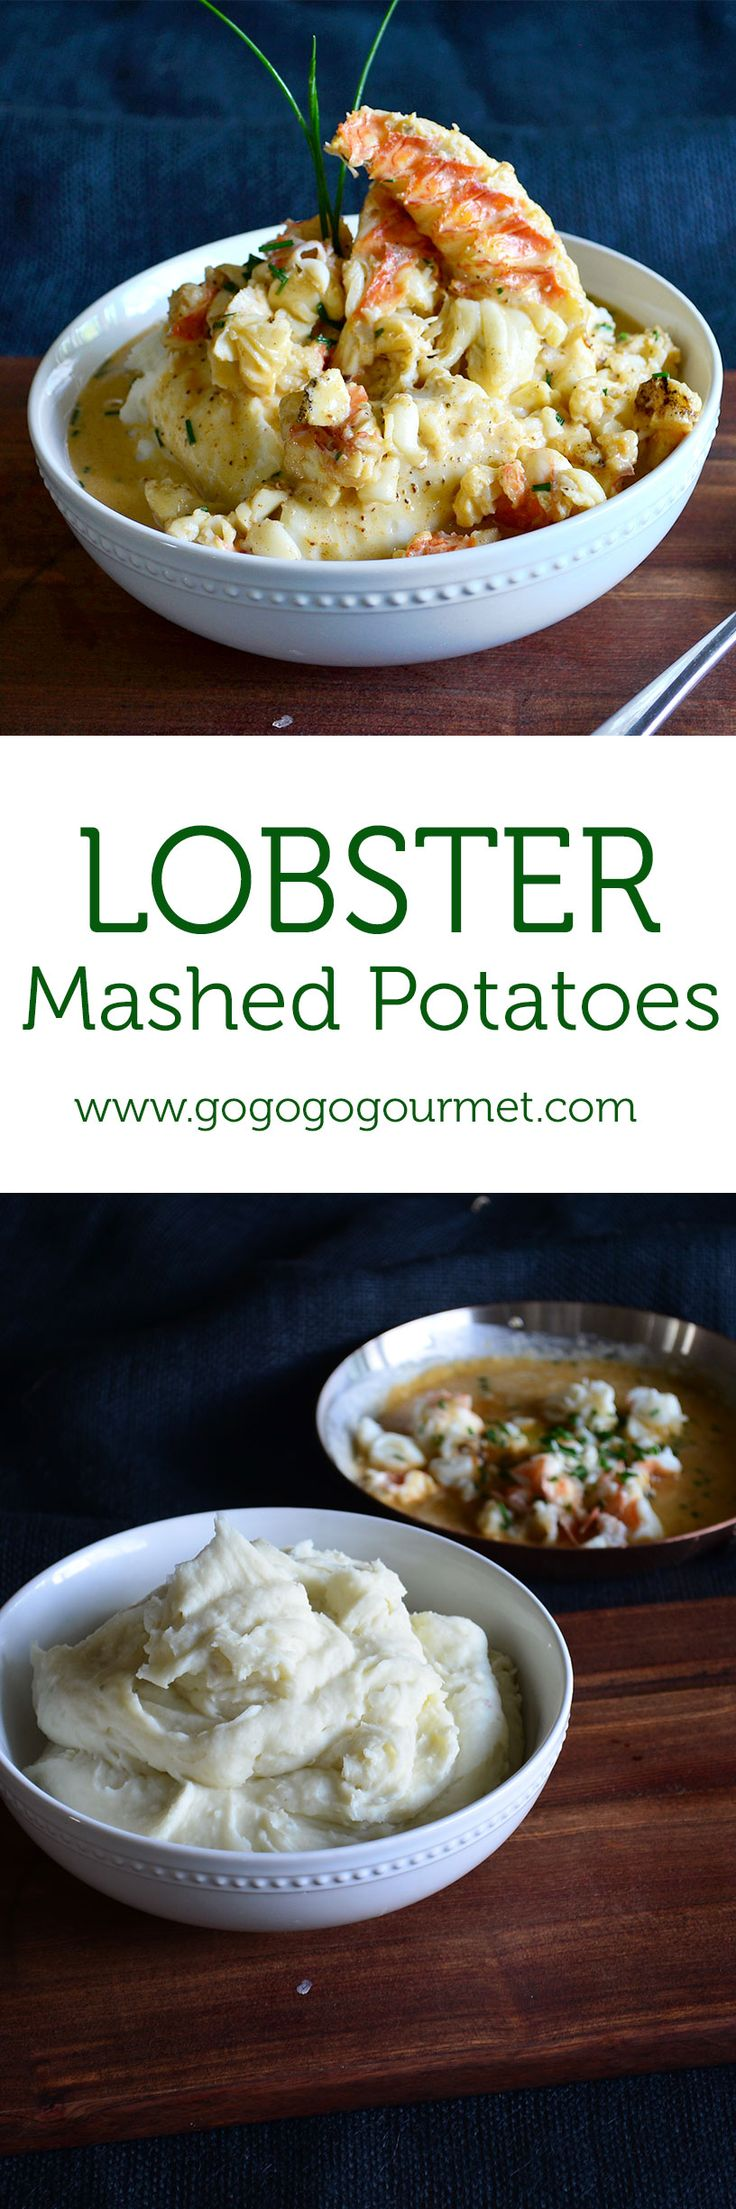 Lobster Mashed Potatoes- creamy boursin mashed potatoes, topped with lobster and an Old Bay cream sauce!